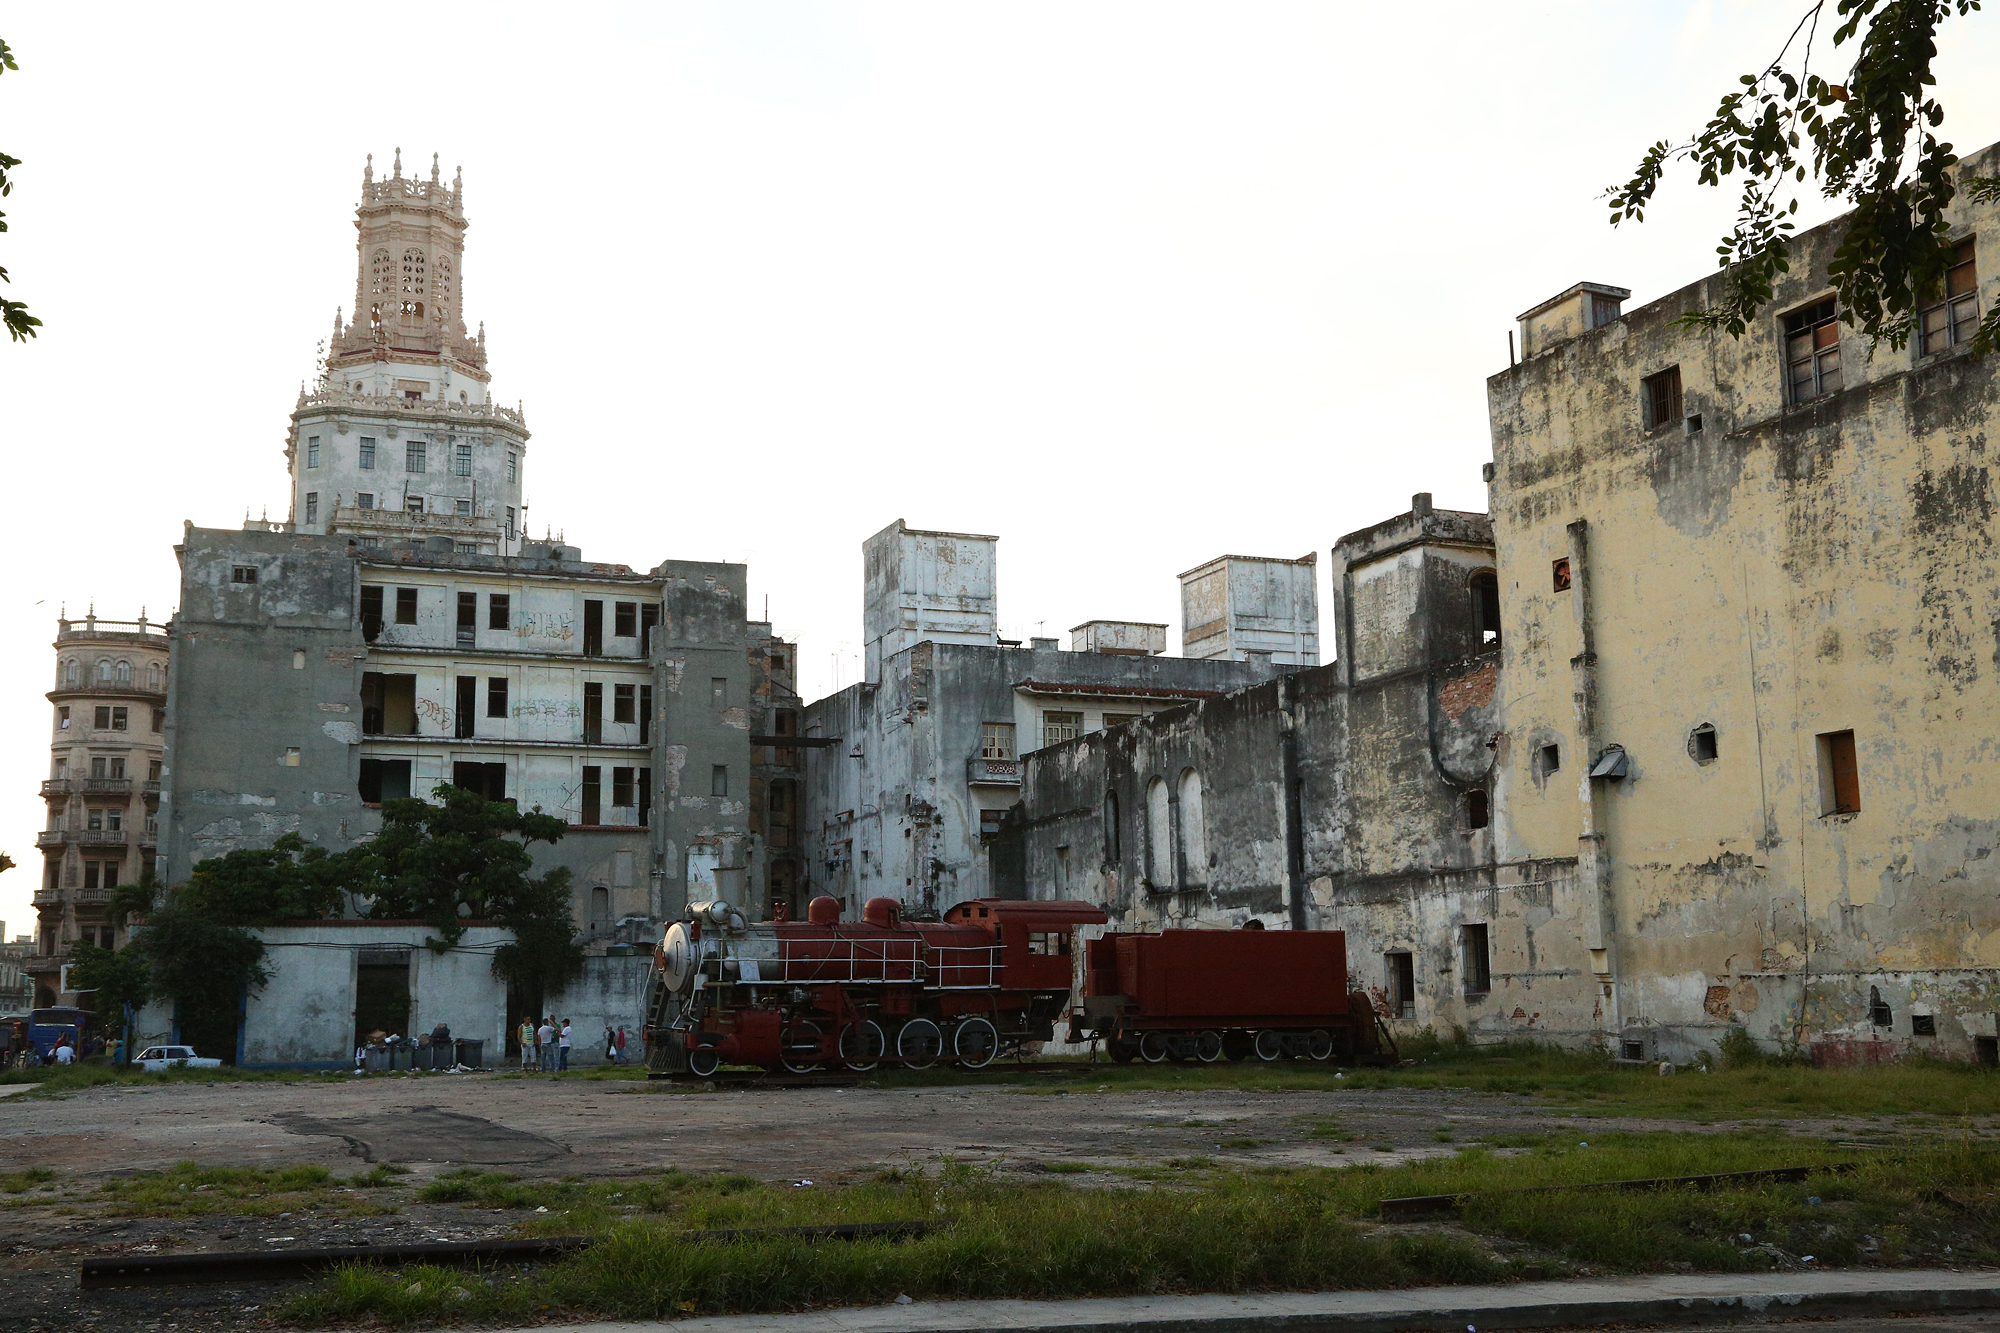 Run down buildings heading into Chinatown in Havana, Cuba